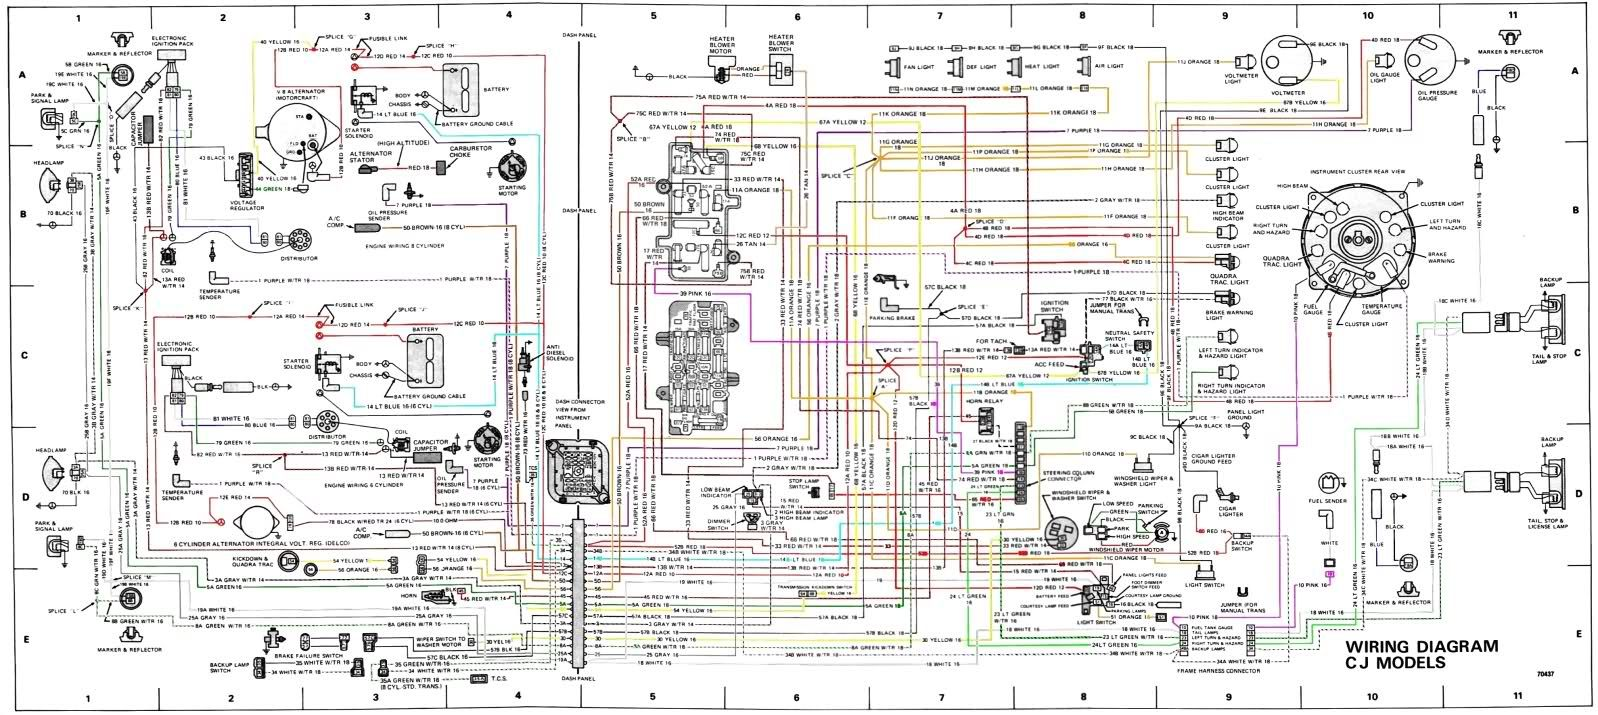 medium resolution of jeep cj7 wiring diagram wiring diagram data schemacj 7 wiring diagram blog wiring diagram jeep cj7